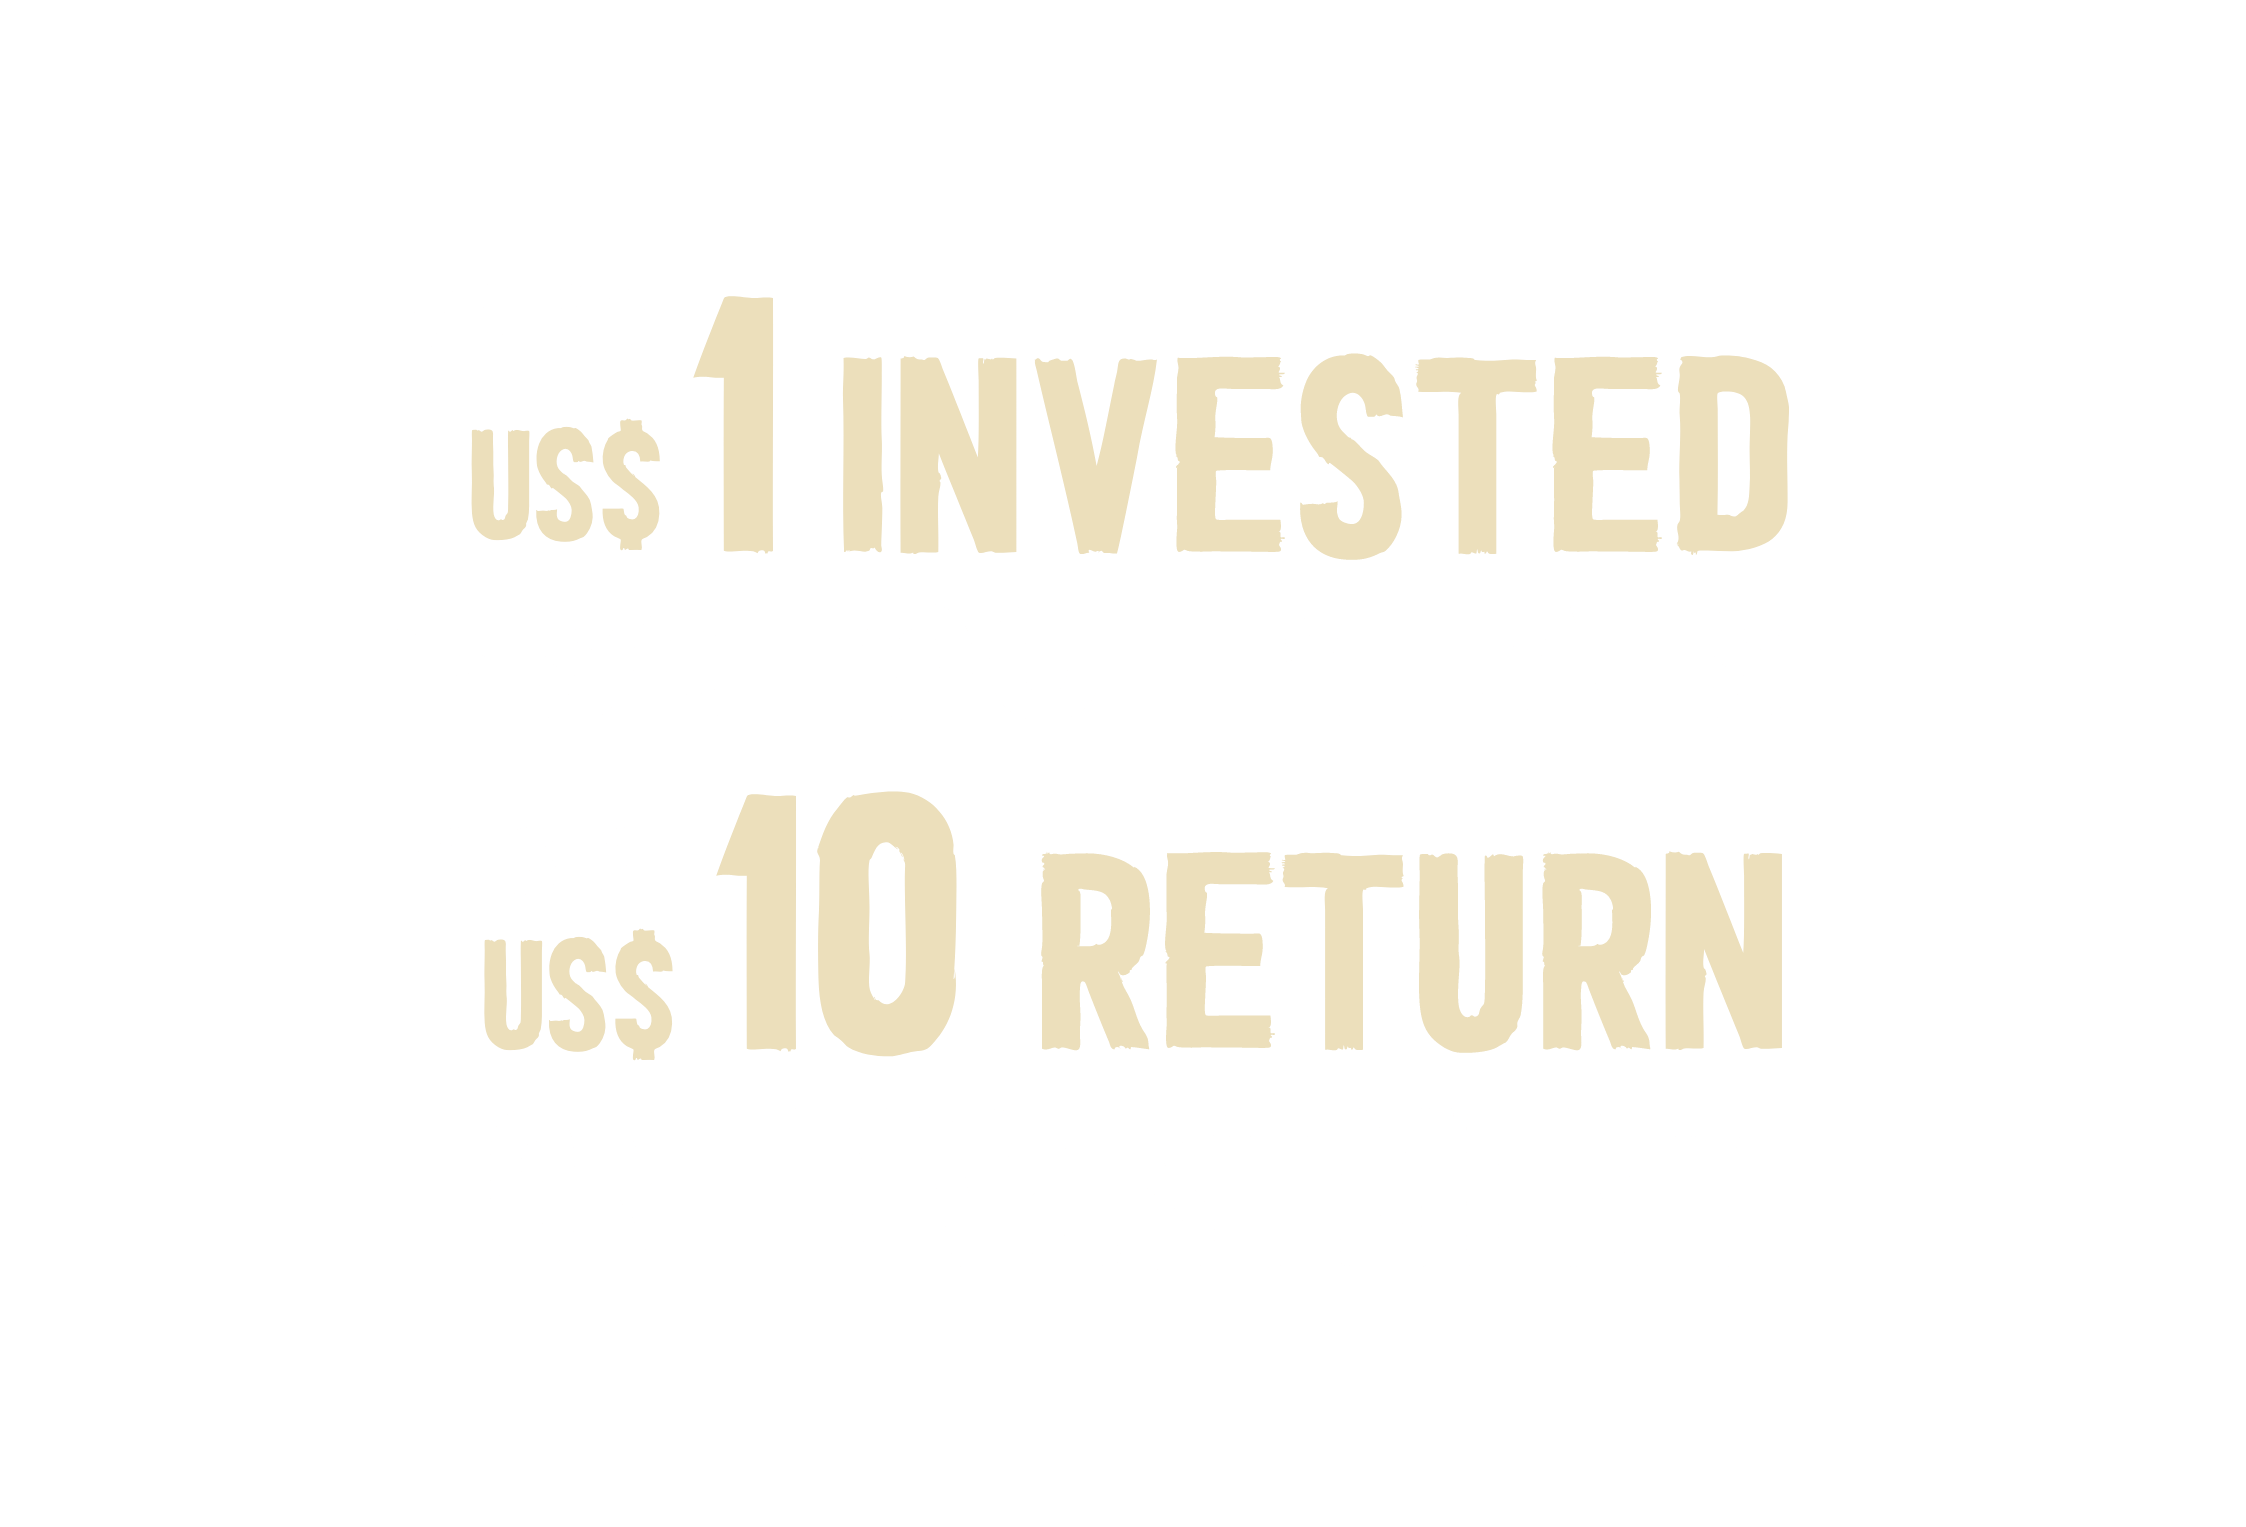 Every 1 dollar invested in school meals has a 10 dollar return on investment